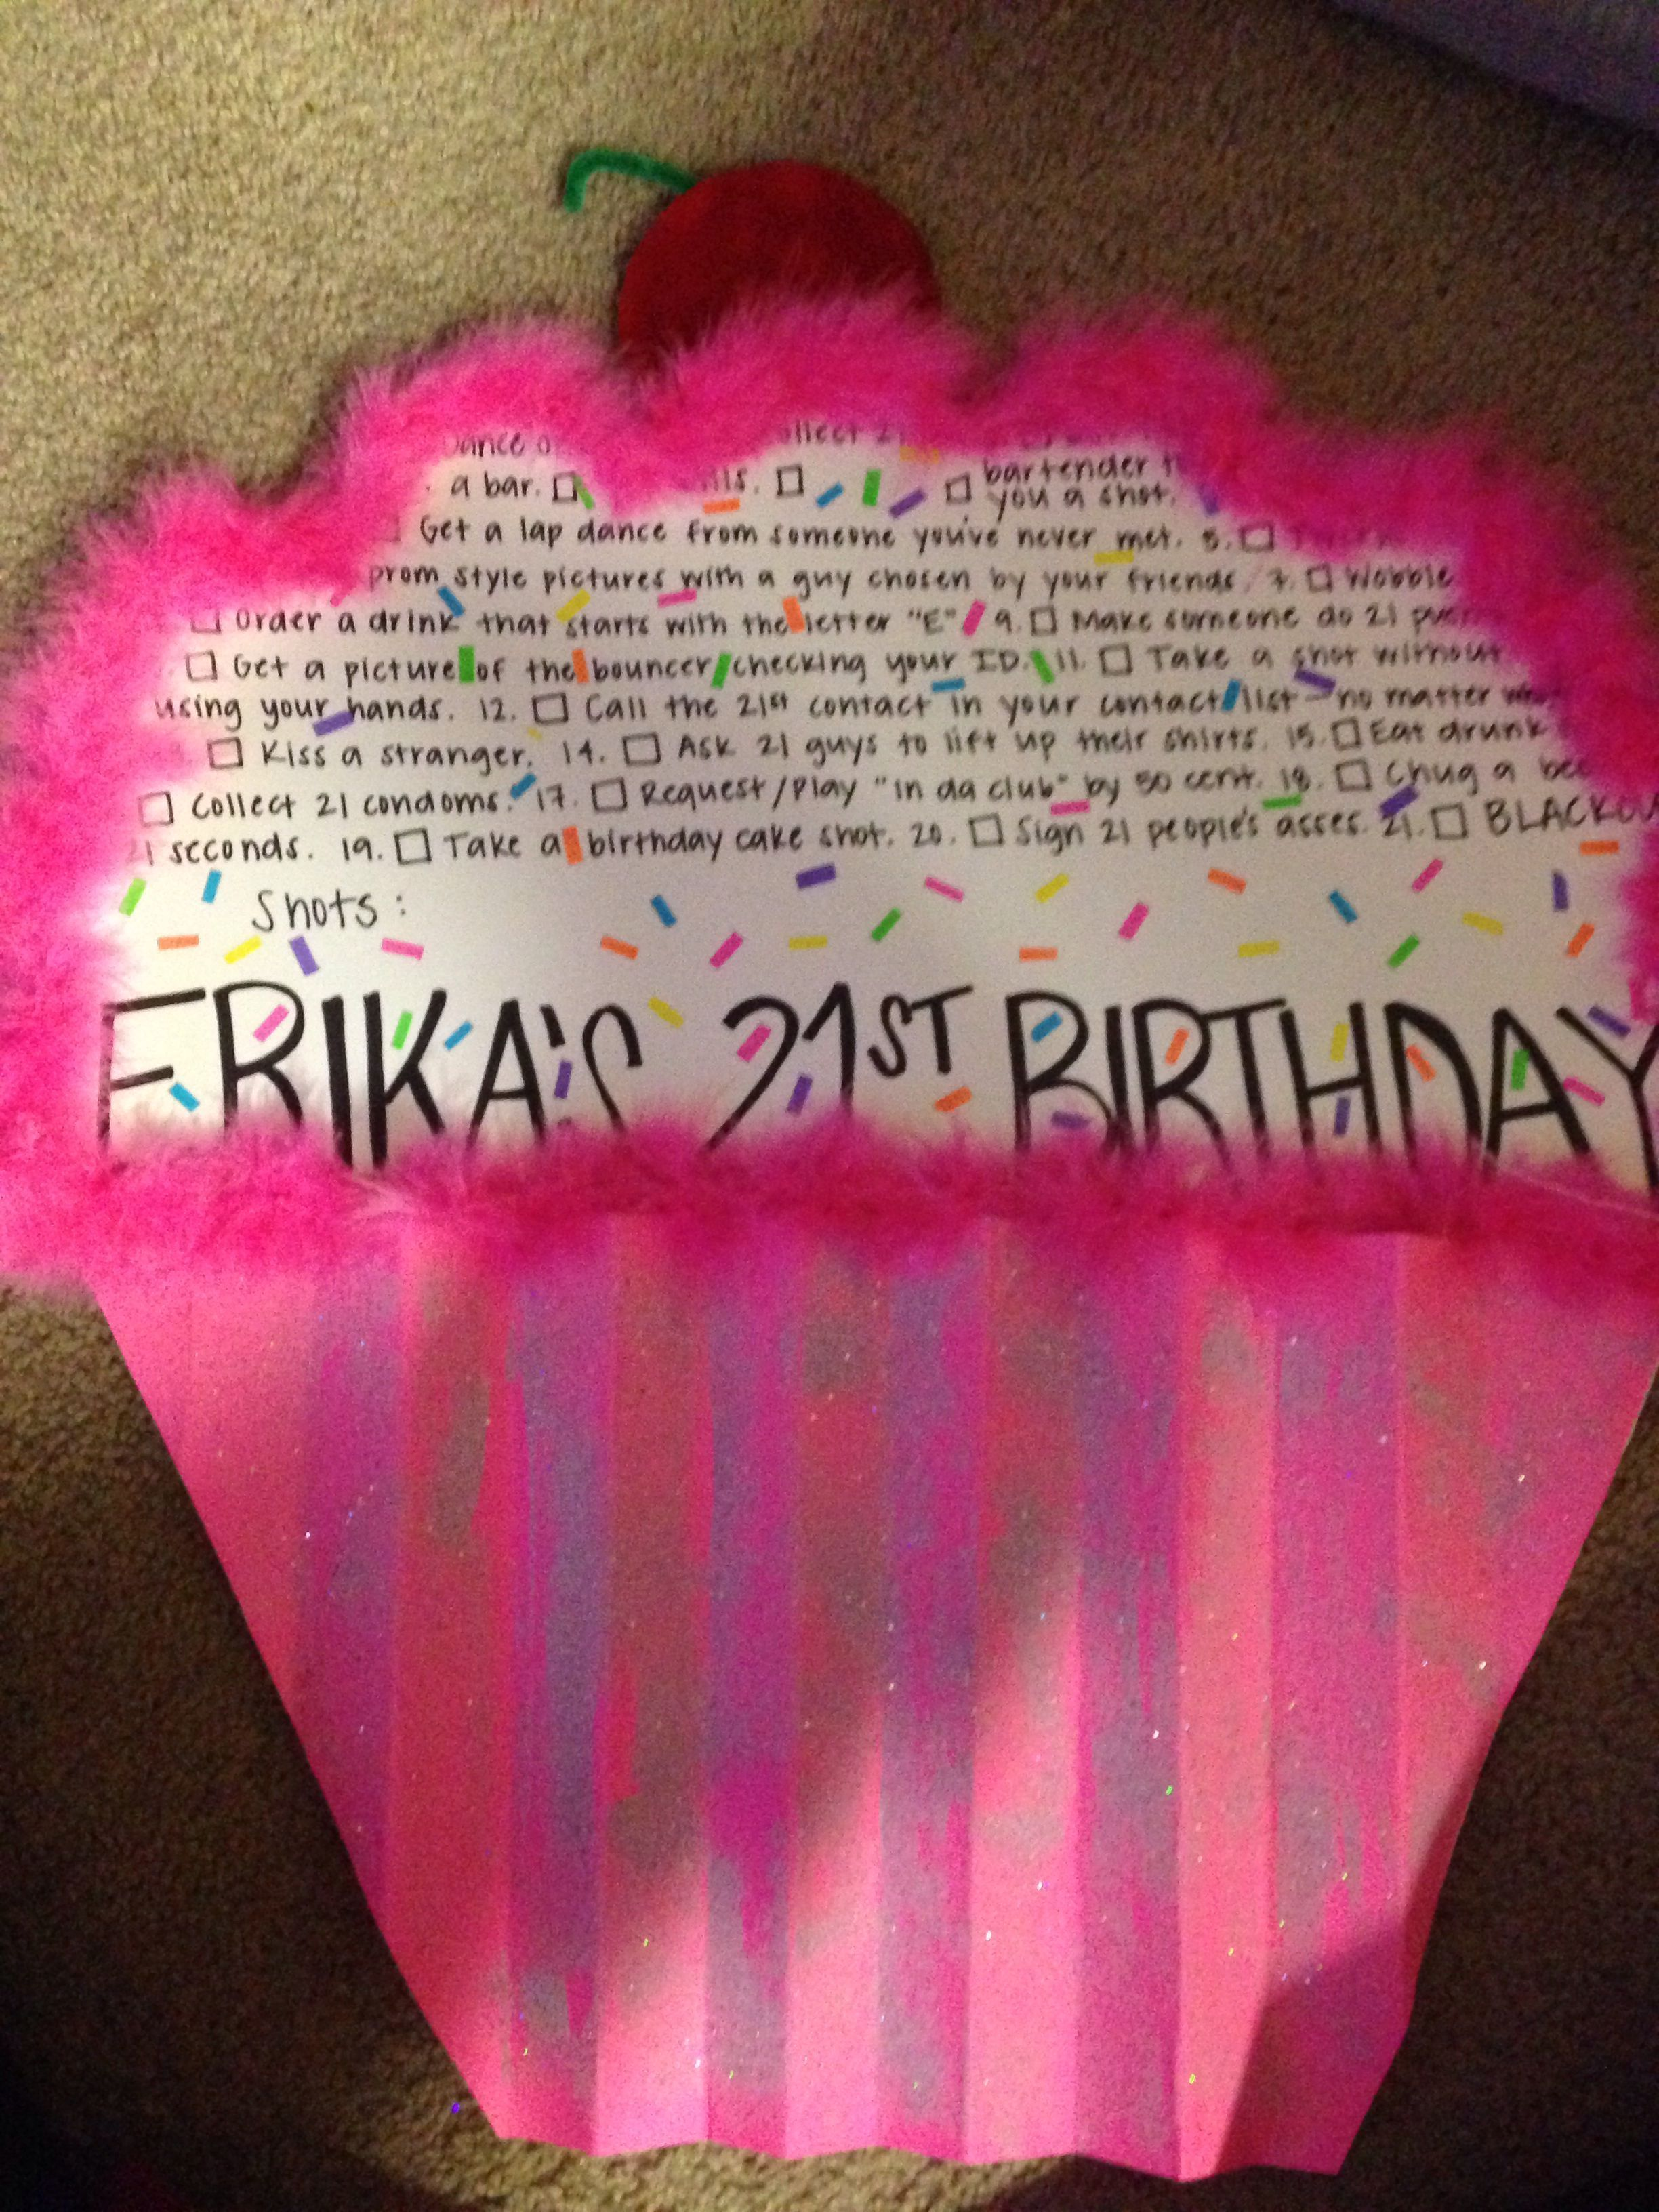 21st birthday sign #21 #birthday #crafts #signs #21stbirthdaysigns 21st birthday sign #21 #birthday #crafts #signs #21stbirthdaysigns 21st birthday sign #21 #birthday #crafts #signs #21stbirthdaysigns 21st birthday sign #21 #birthday #crafts #signs #21stbirthdaysigns 21st birthday sign #21 #birthday #crafts #signs #21stbirthdaysigns 21st birthday sign #21 #birthday #crafts #signs #21stbirthdaysigns 21st birthday sign #21 #birthday #crafts #signs #21stbirthdaysigns 21st birthday sign #21 #birthda #21stbirthdaysigns